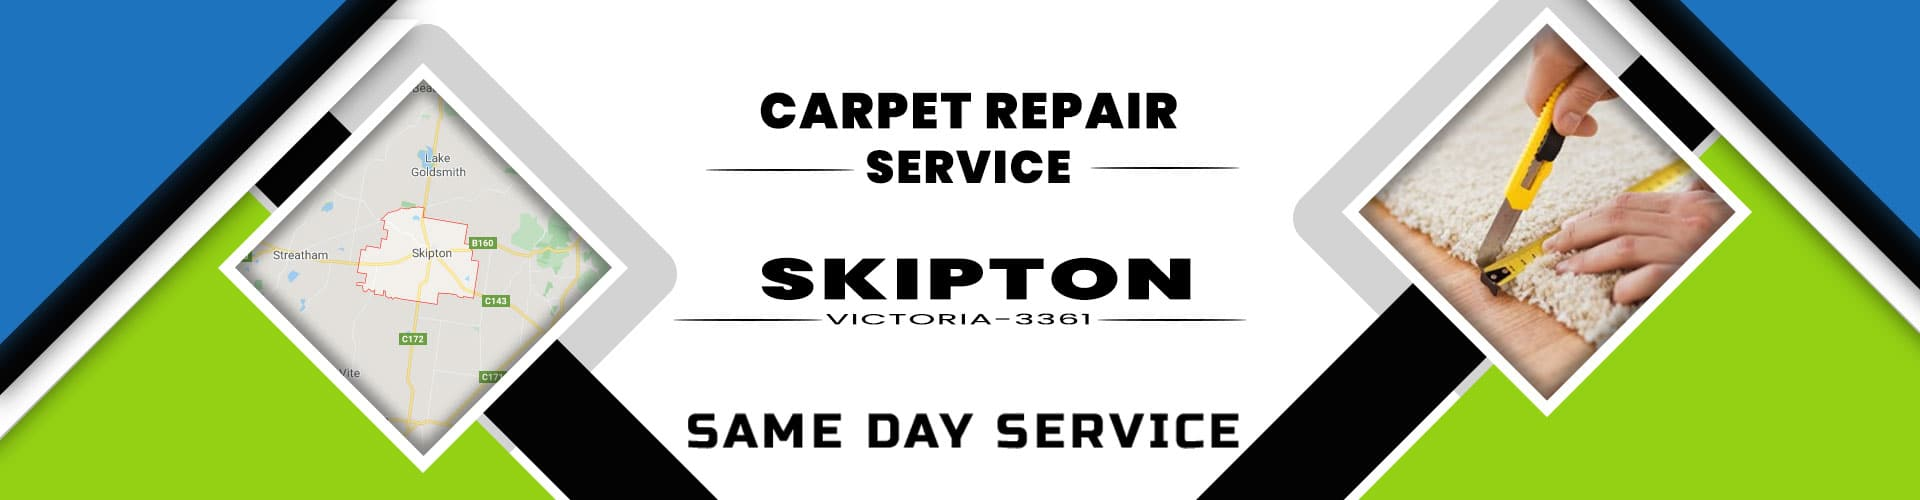 Carpet Repair Skipton